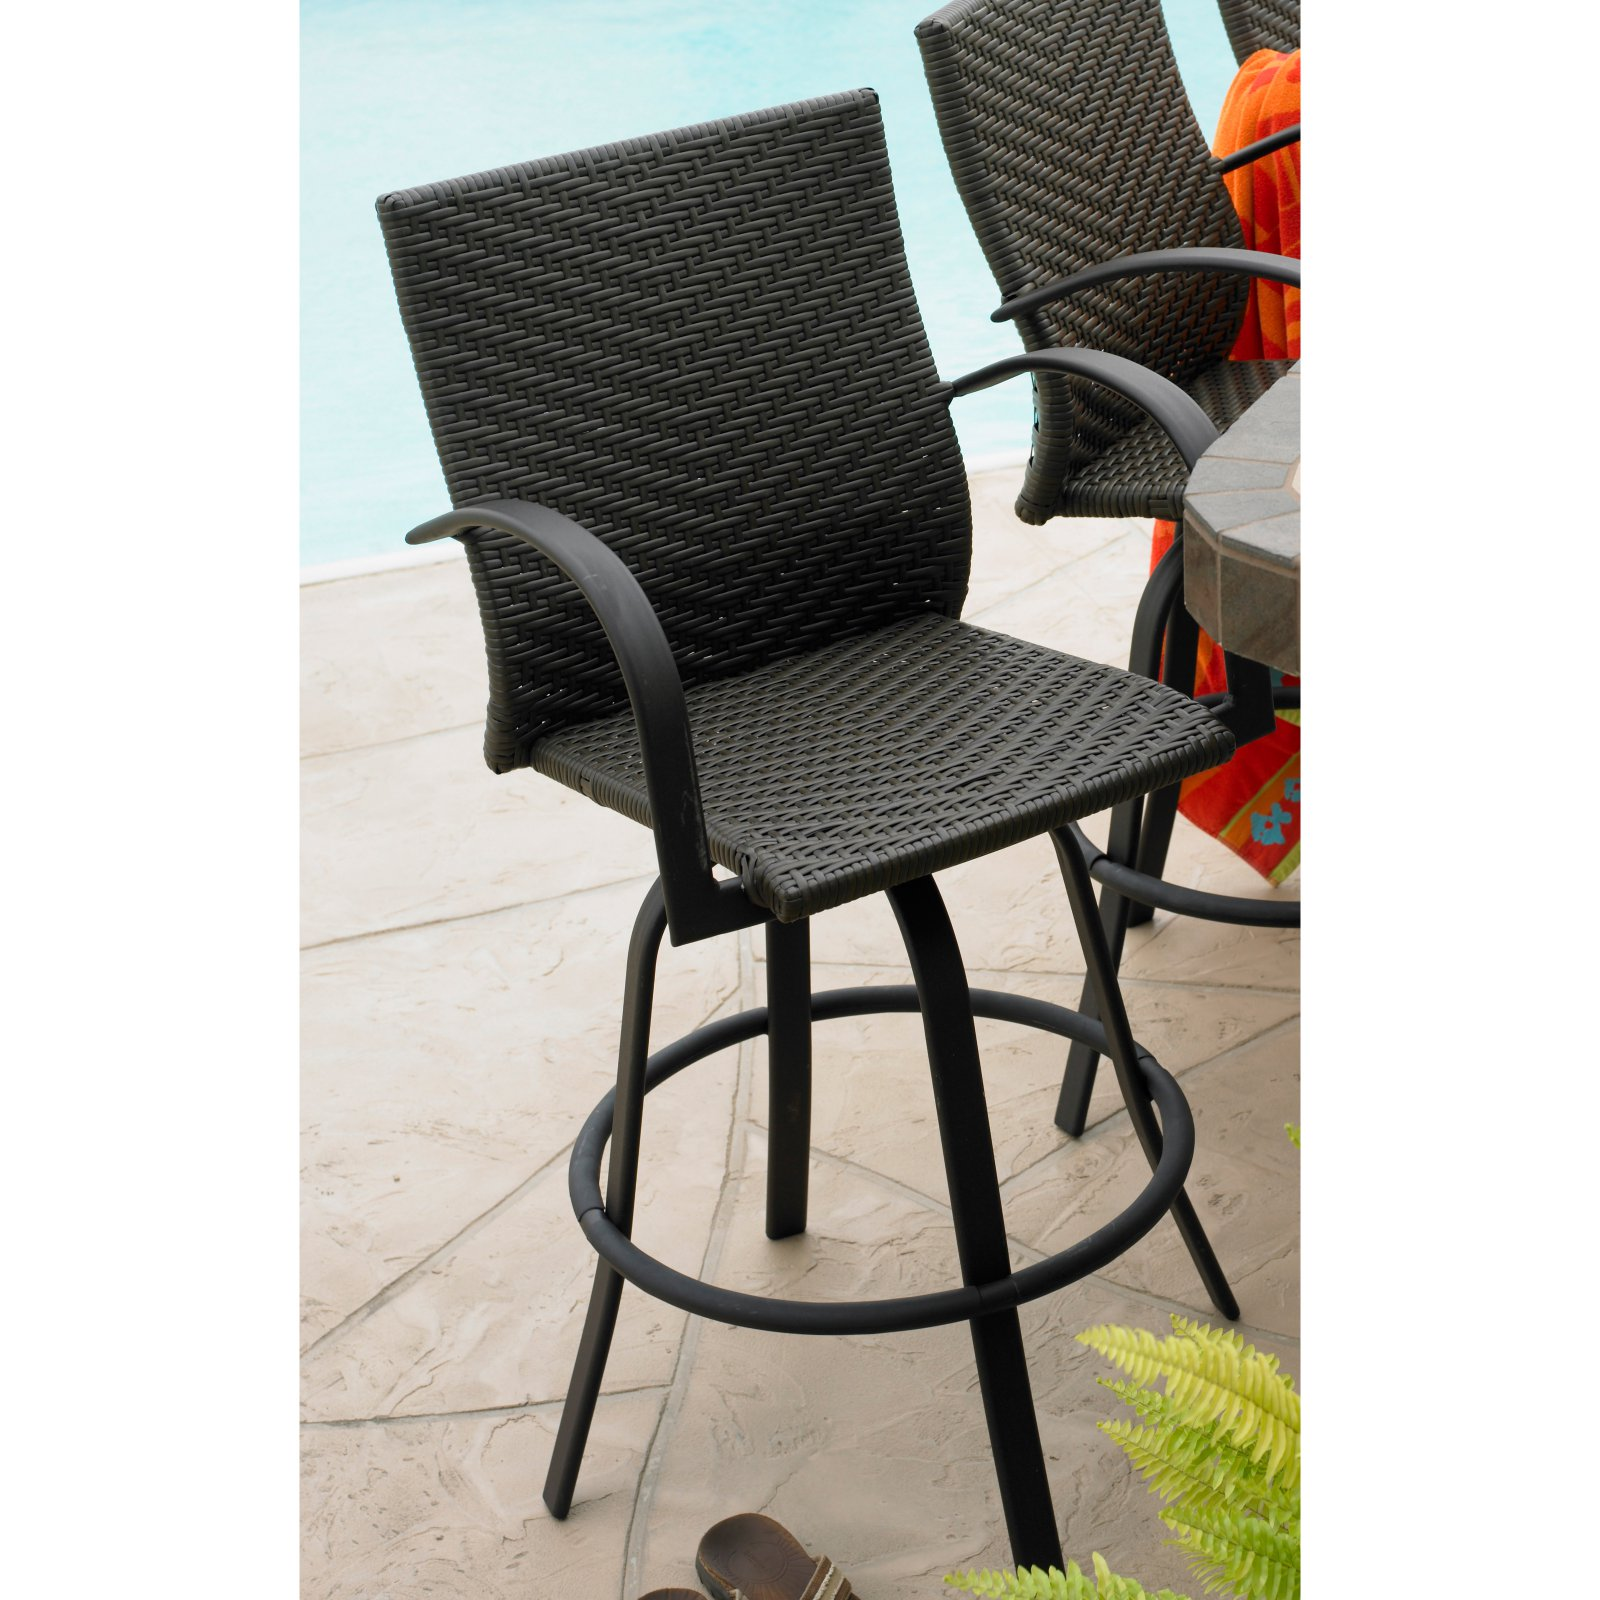 Outdoor GreatRoom Swivel Bar Stools - Set of 2